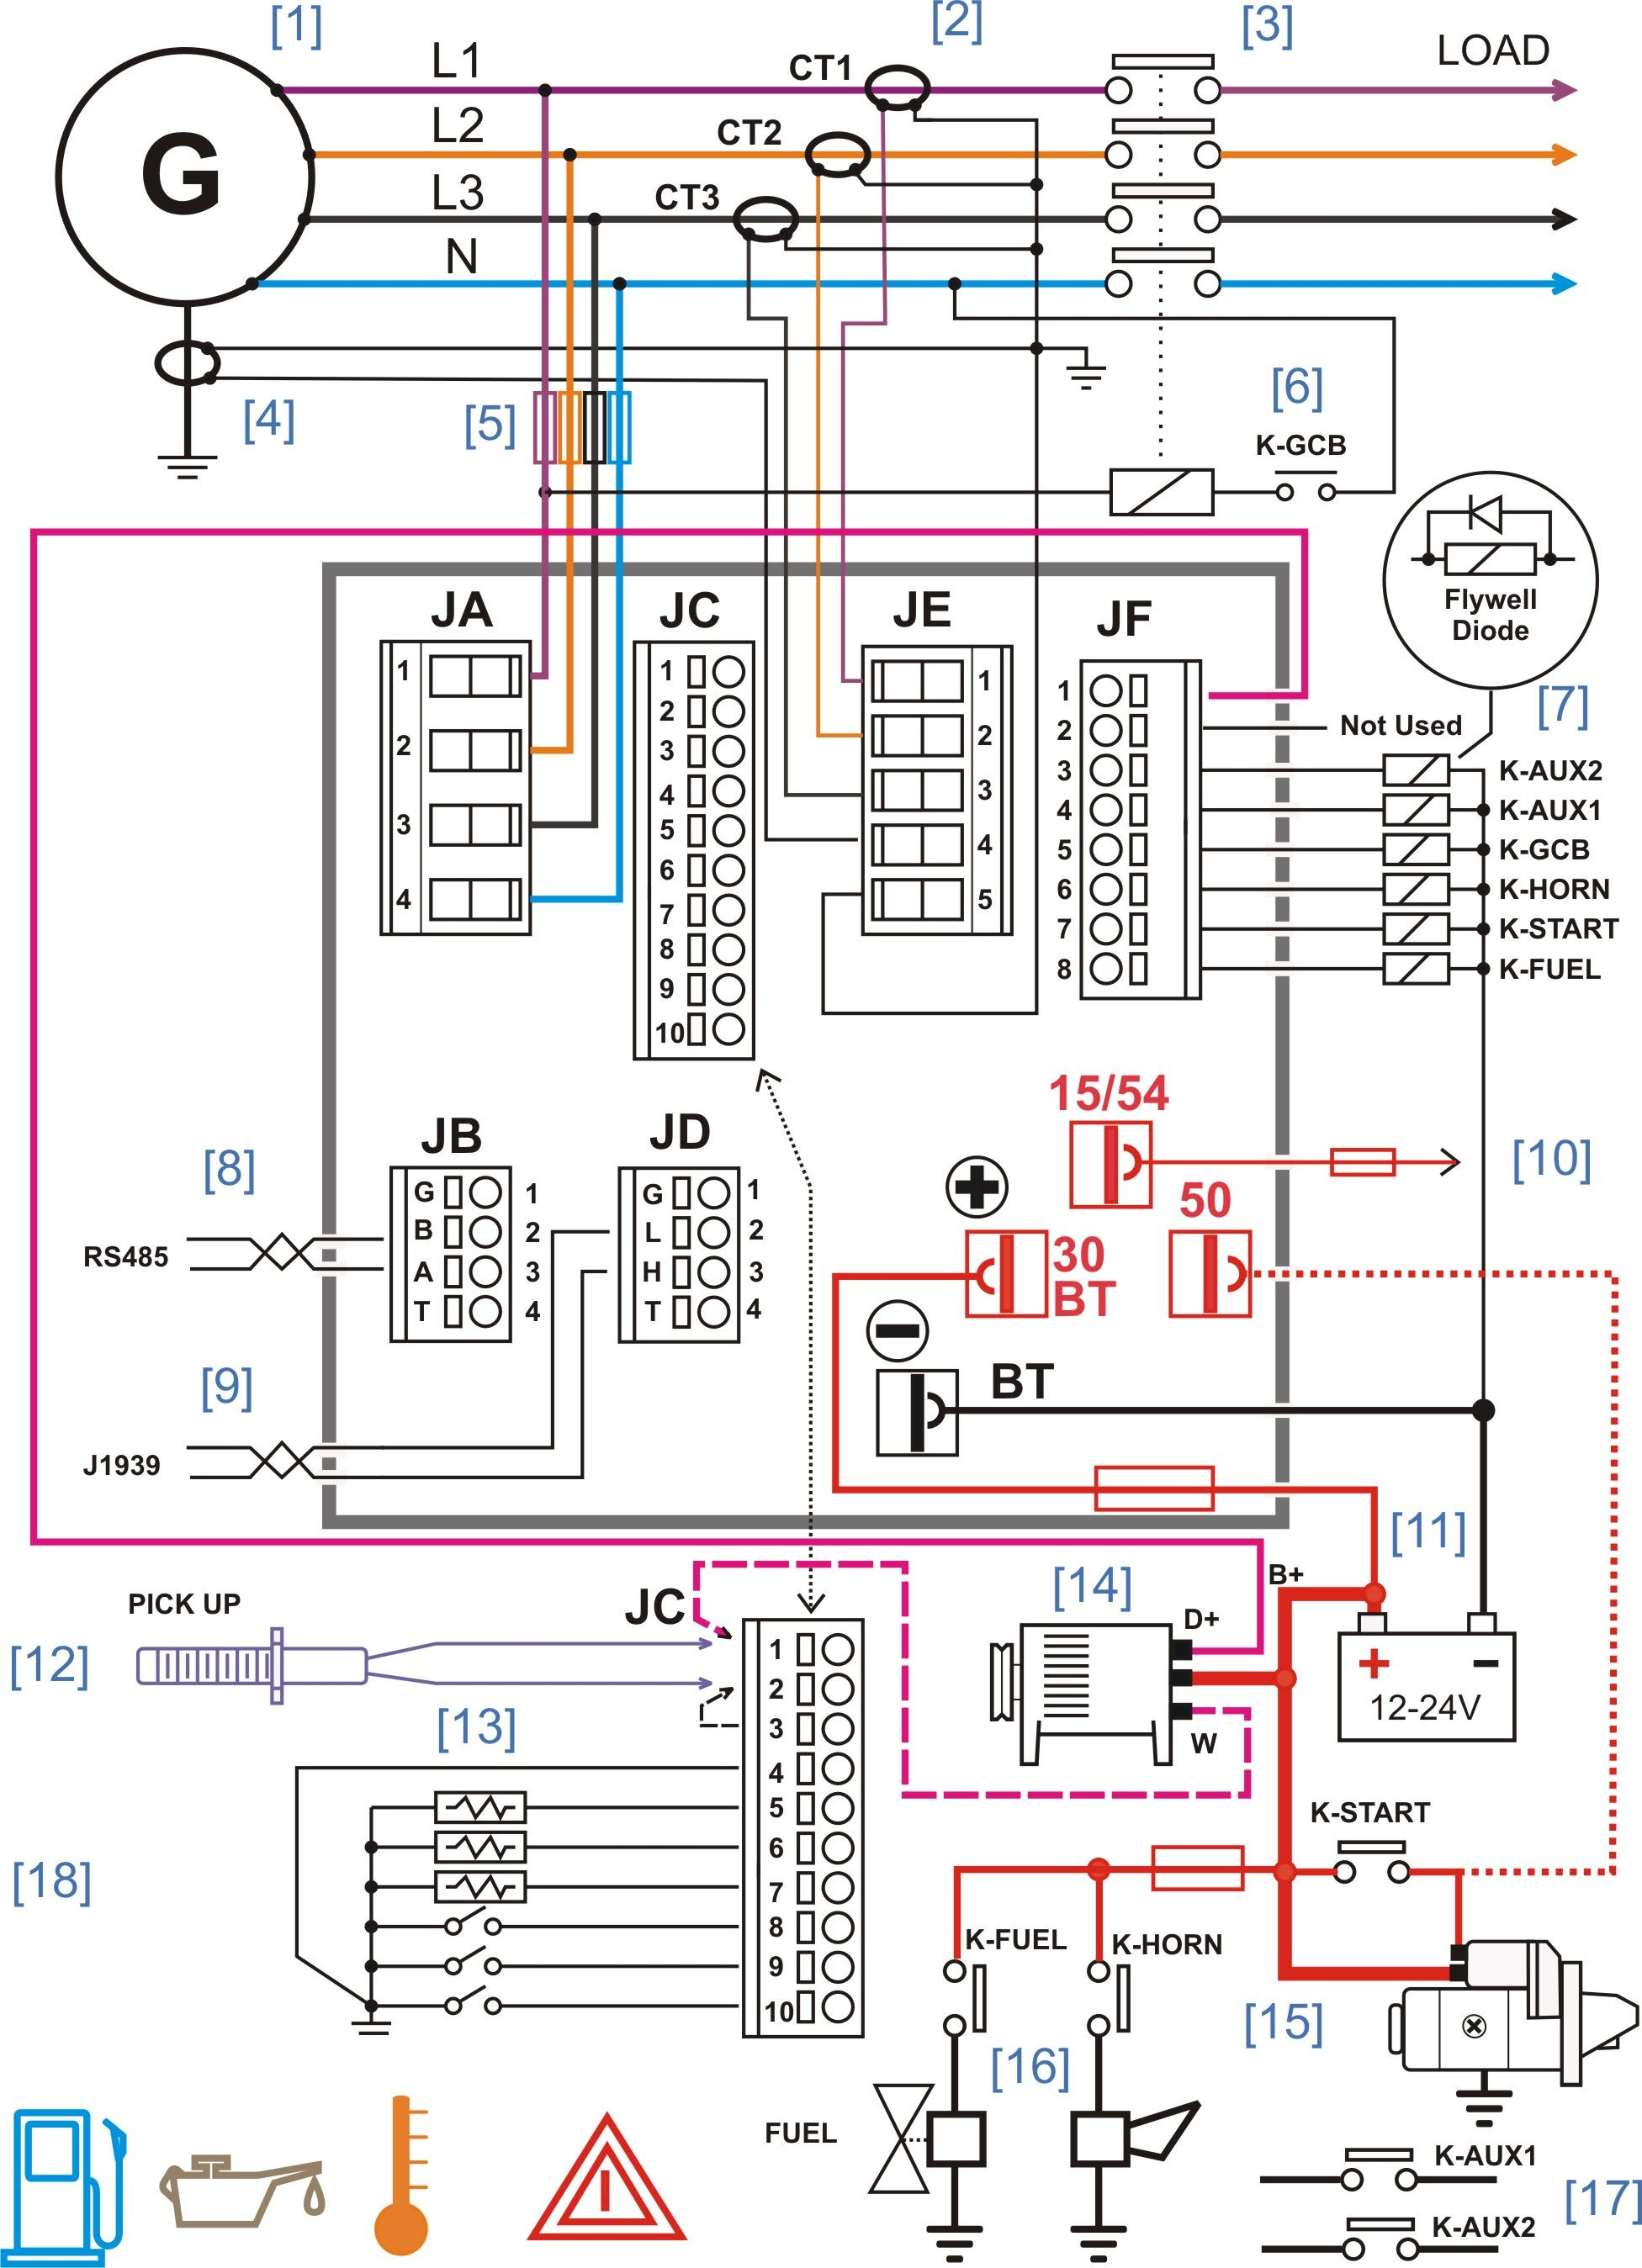 pin by diagram bacamajalah on tips references in 2019 Wiring Schematic Symbols